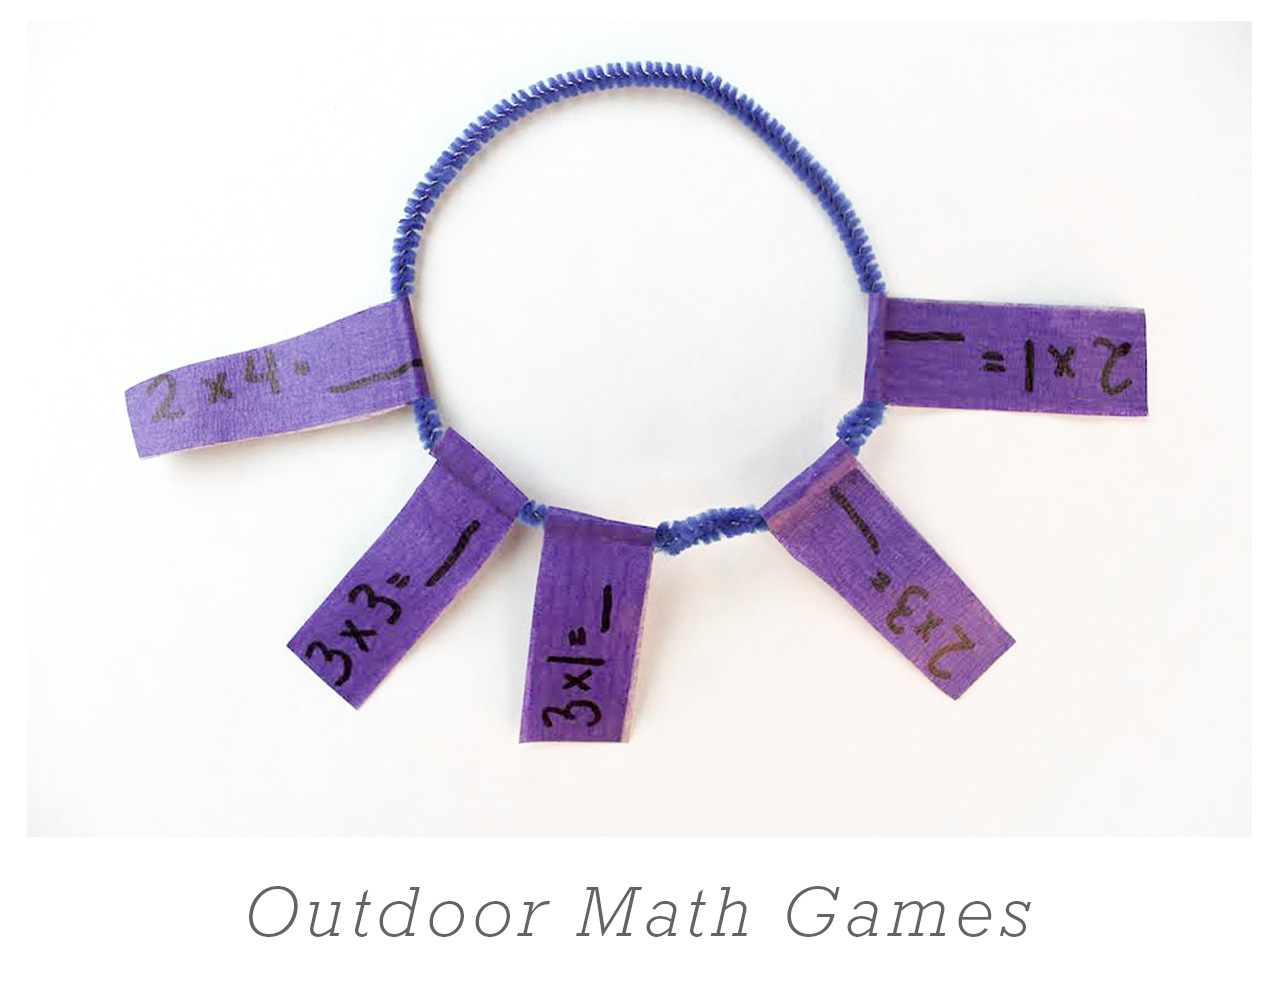 Outdoor Math Games